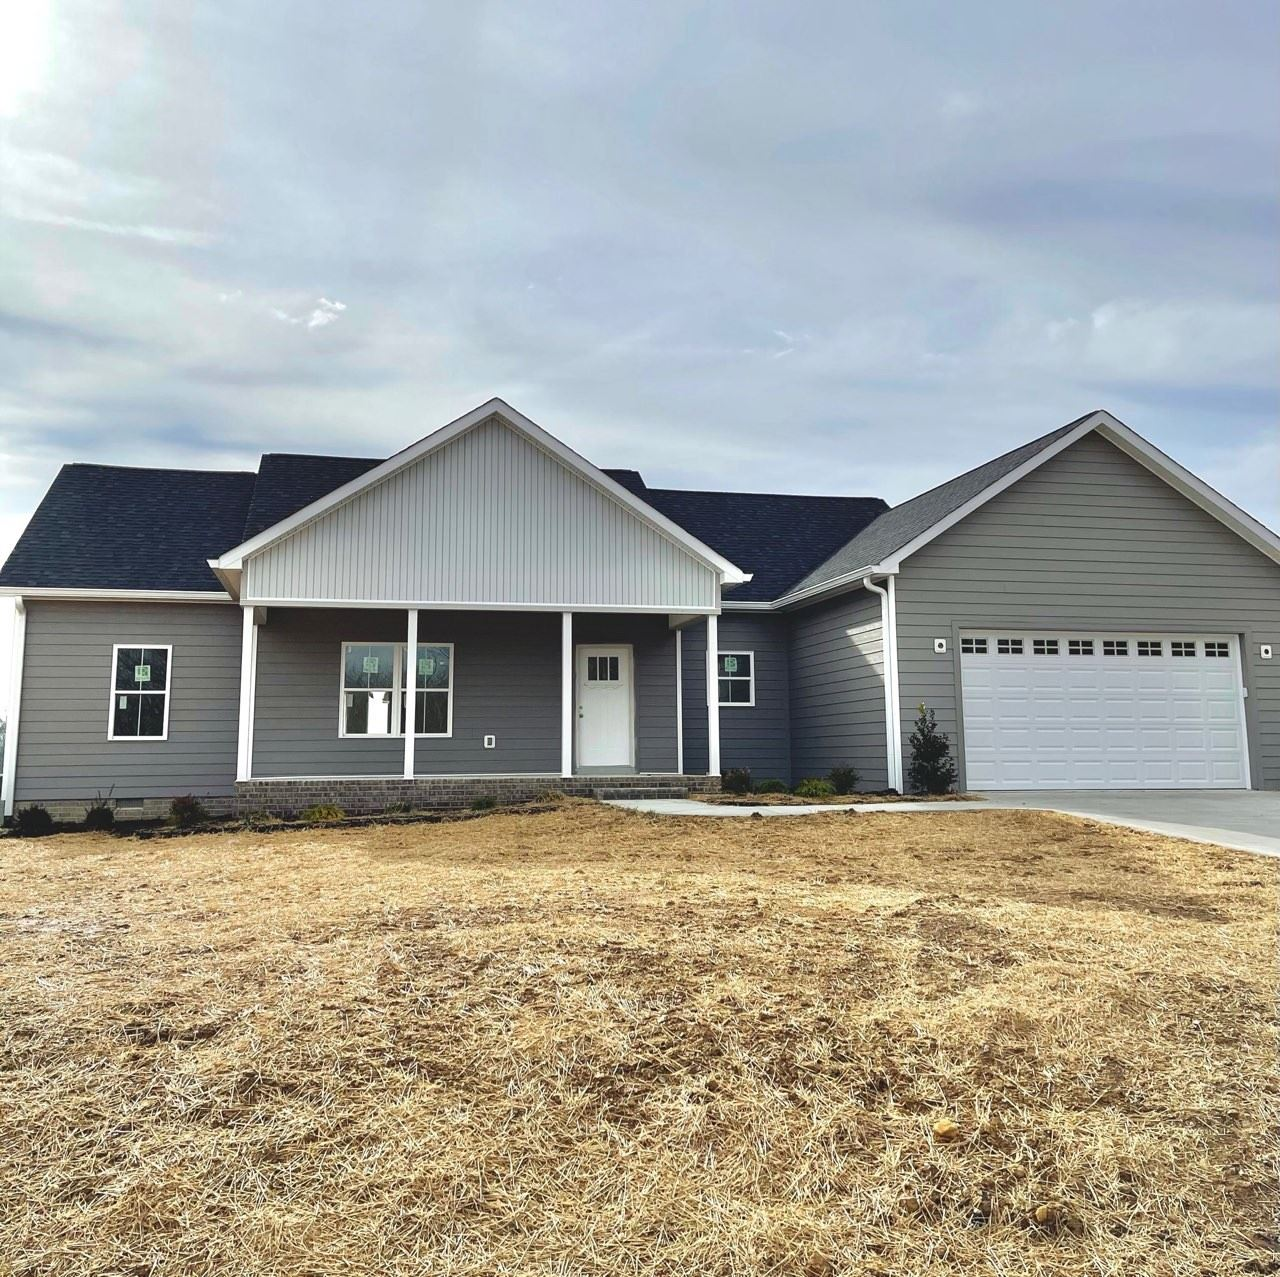 3770 Cumby Rd, Cookeville, TN 38501 - MLS#: 2219681